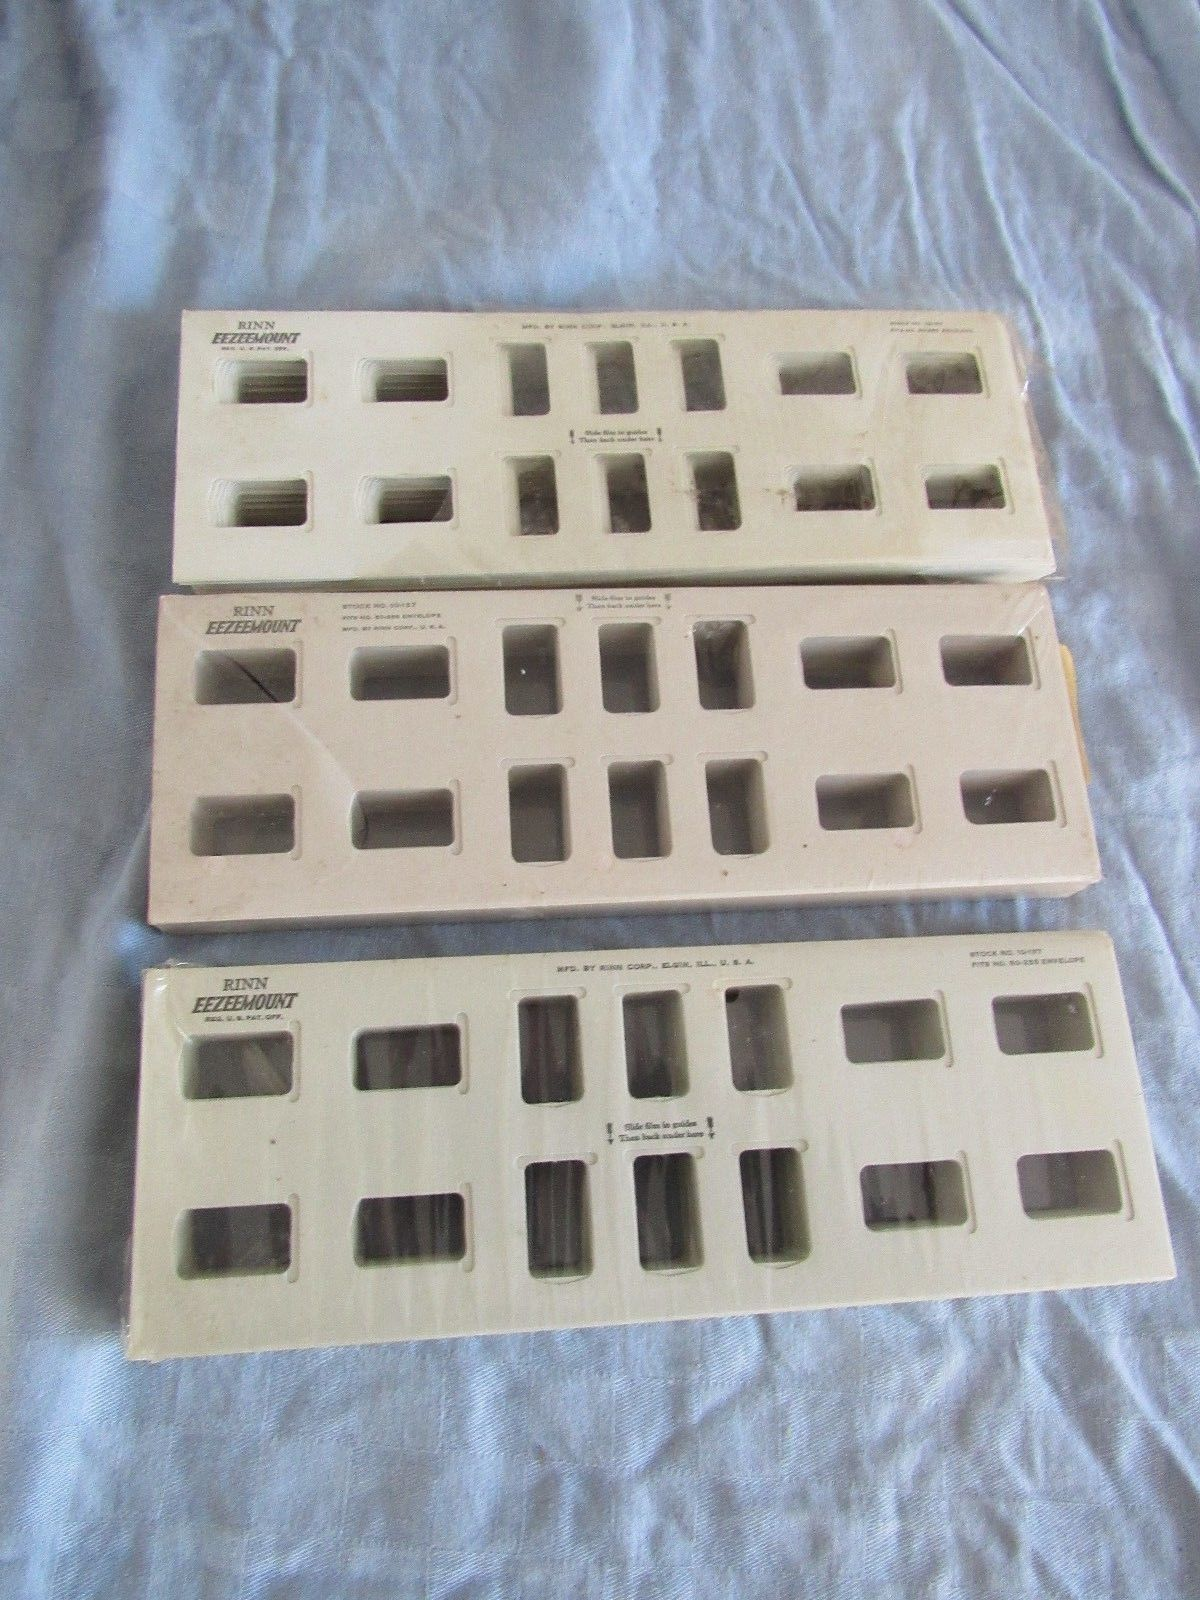 74 Dental X-RAY Holders Mounts Eezeemount Rinn Stock no 10-137